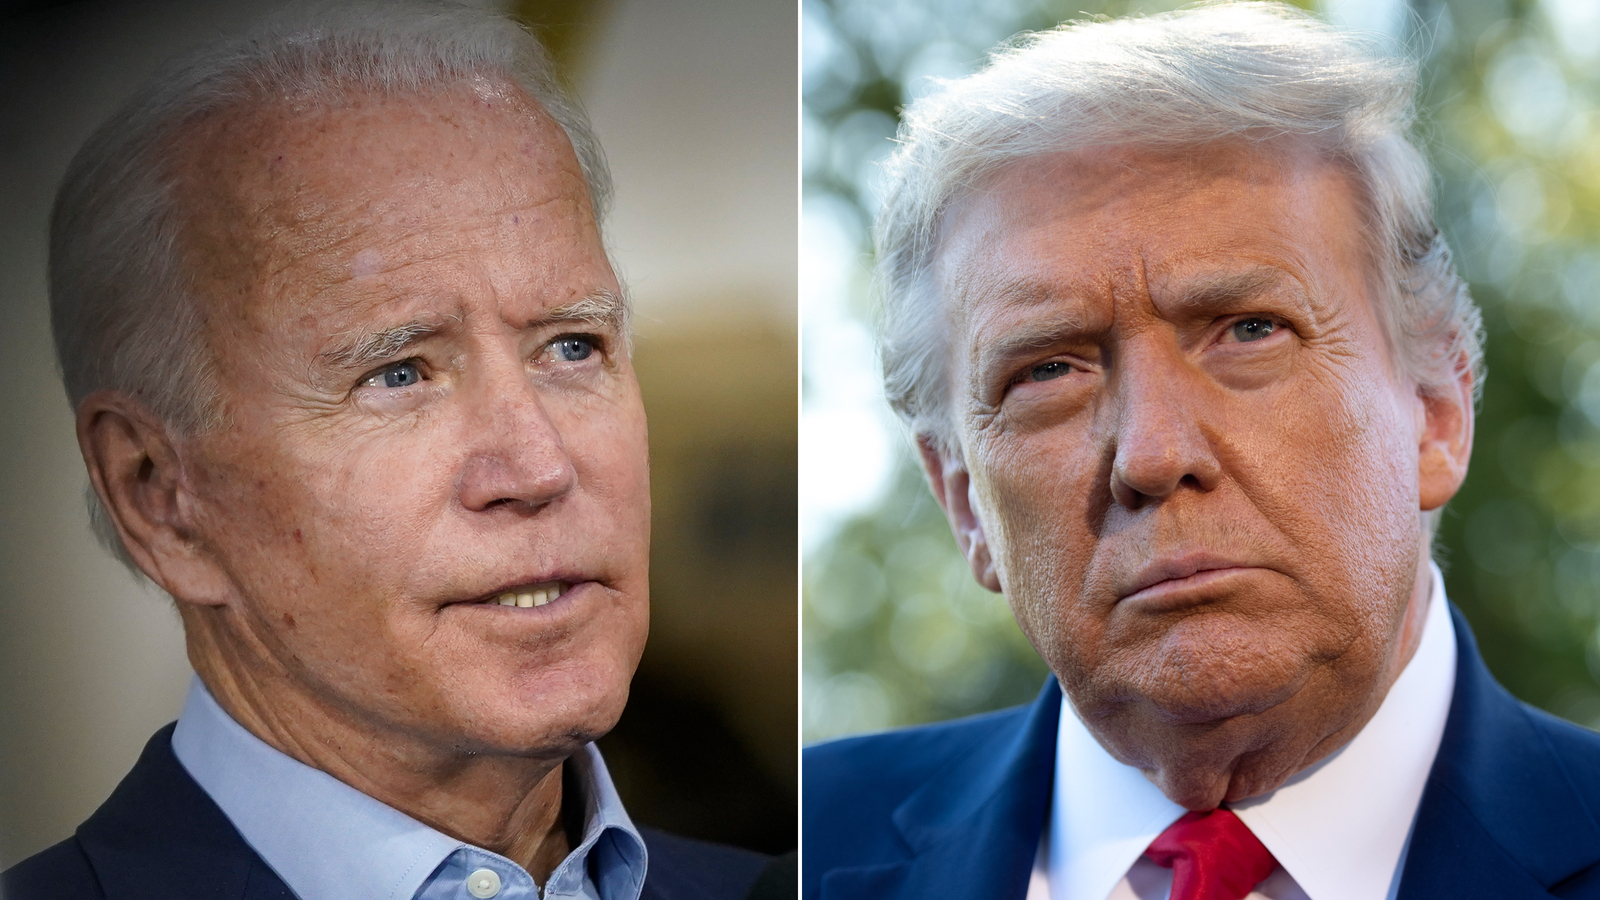 Trump and Biden prepare for a clash over voter fraud claims at Tuesday's debate